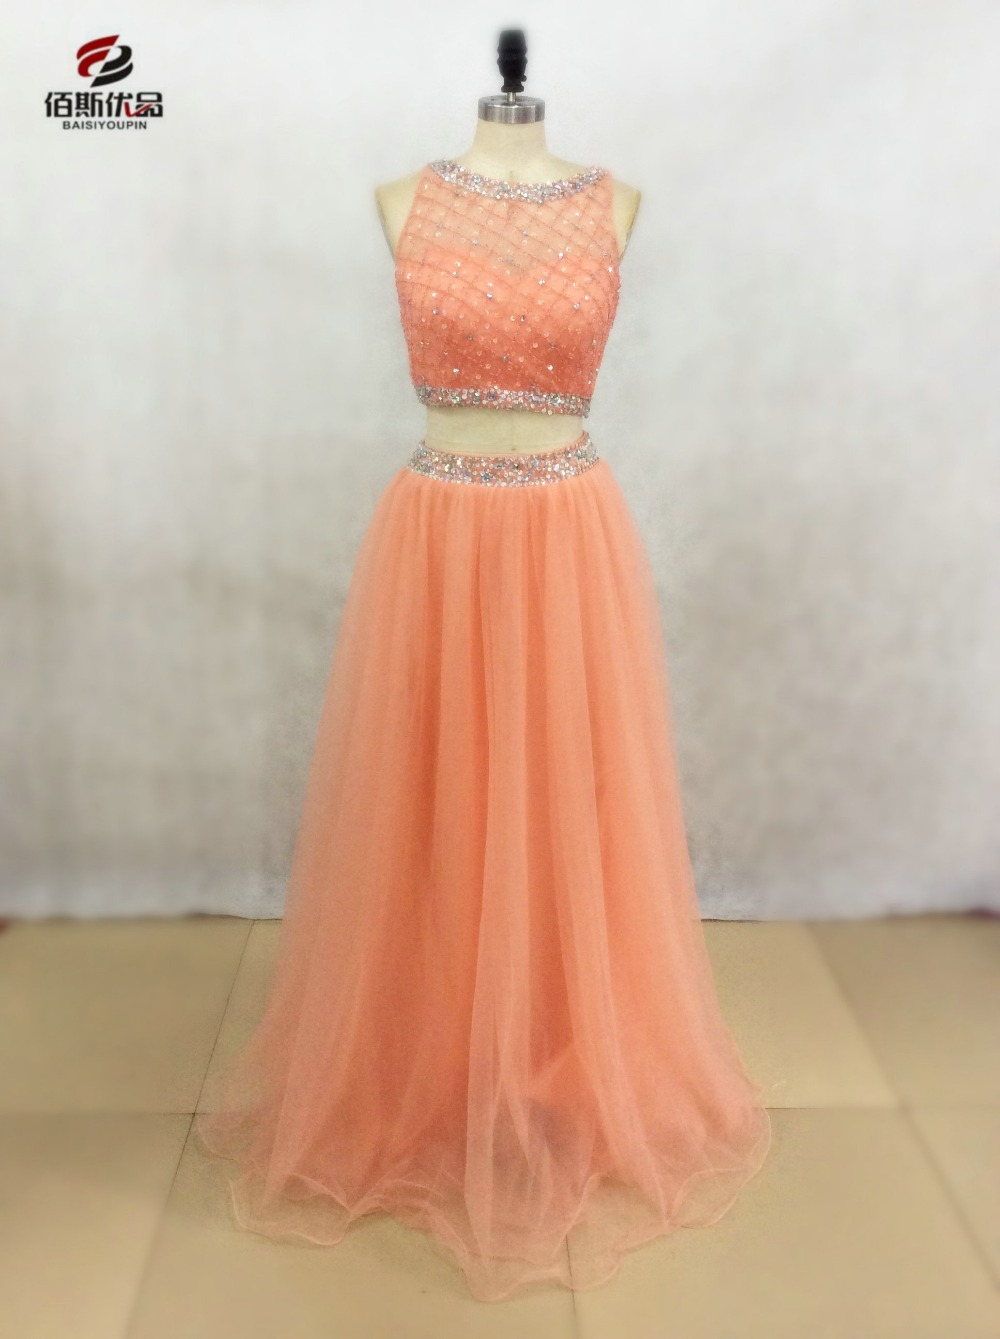 Stunning Sparkle Crystal Beaded Orange Organza Two Piece Prom Dresses 2017 New Style Women Long 2 in 1 Party Gowns Evening Dress